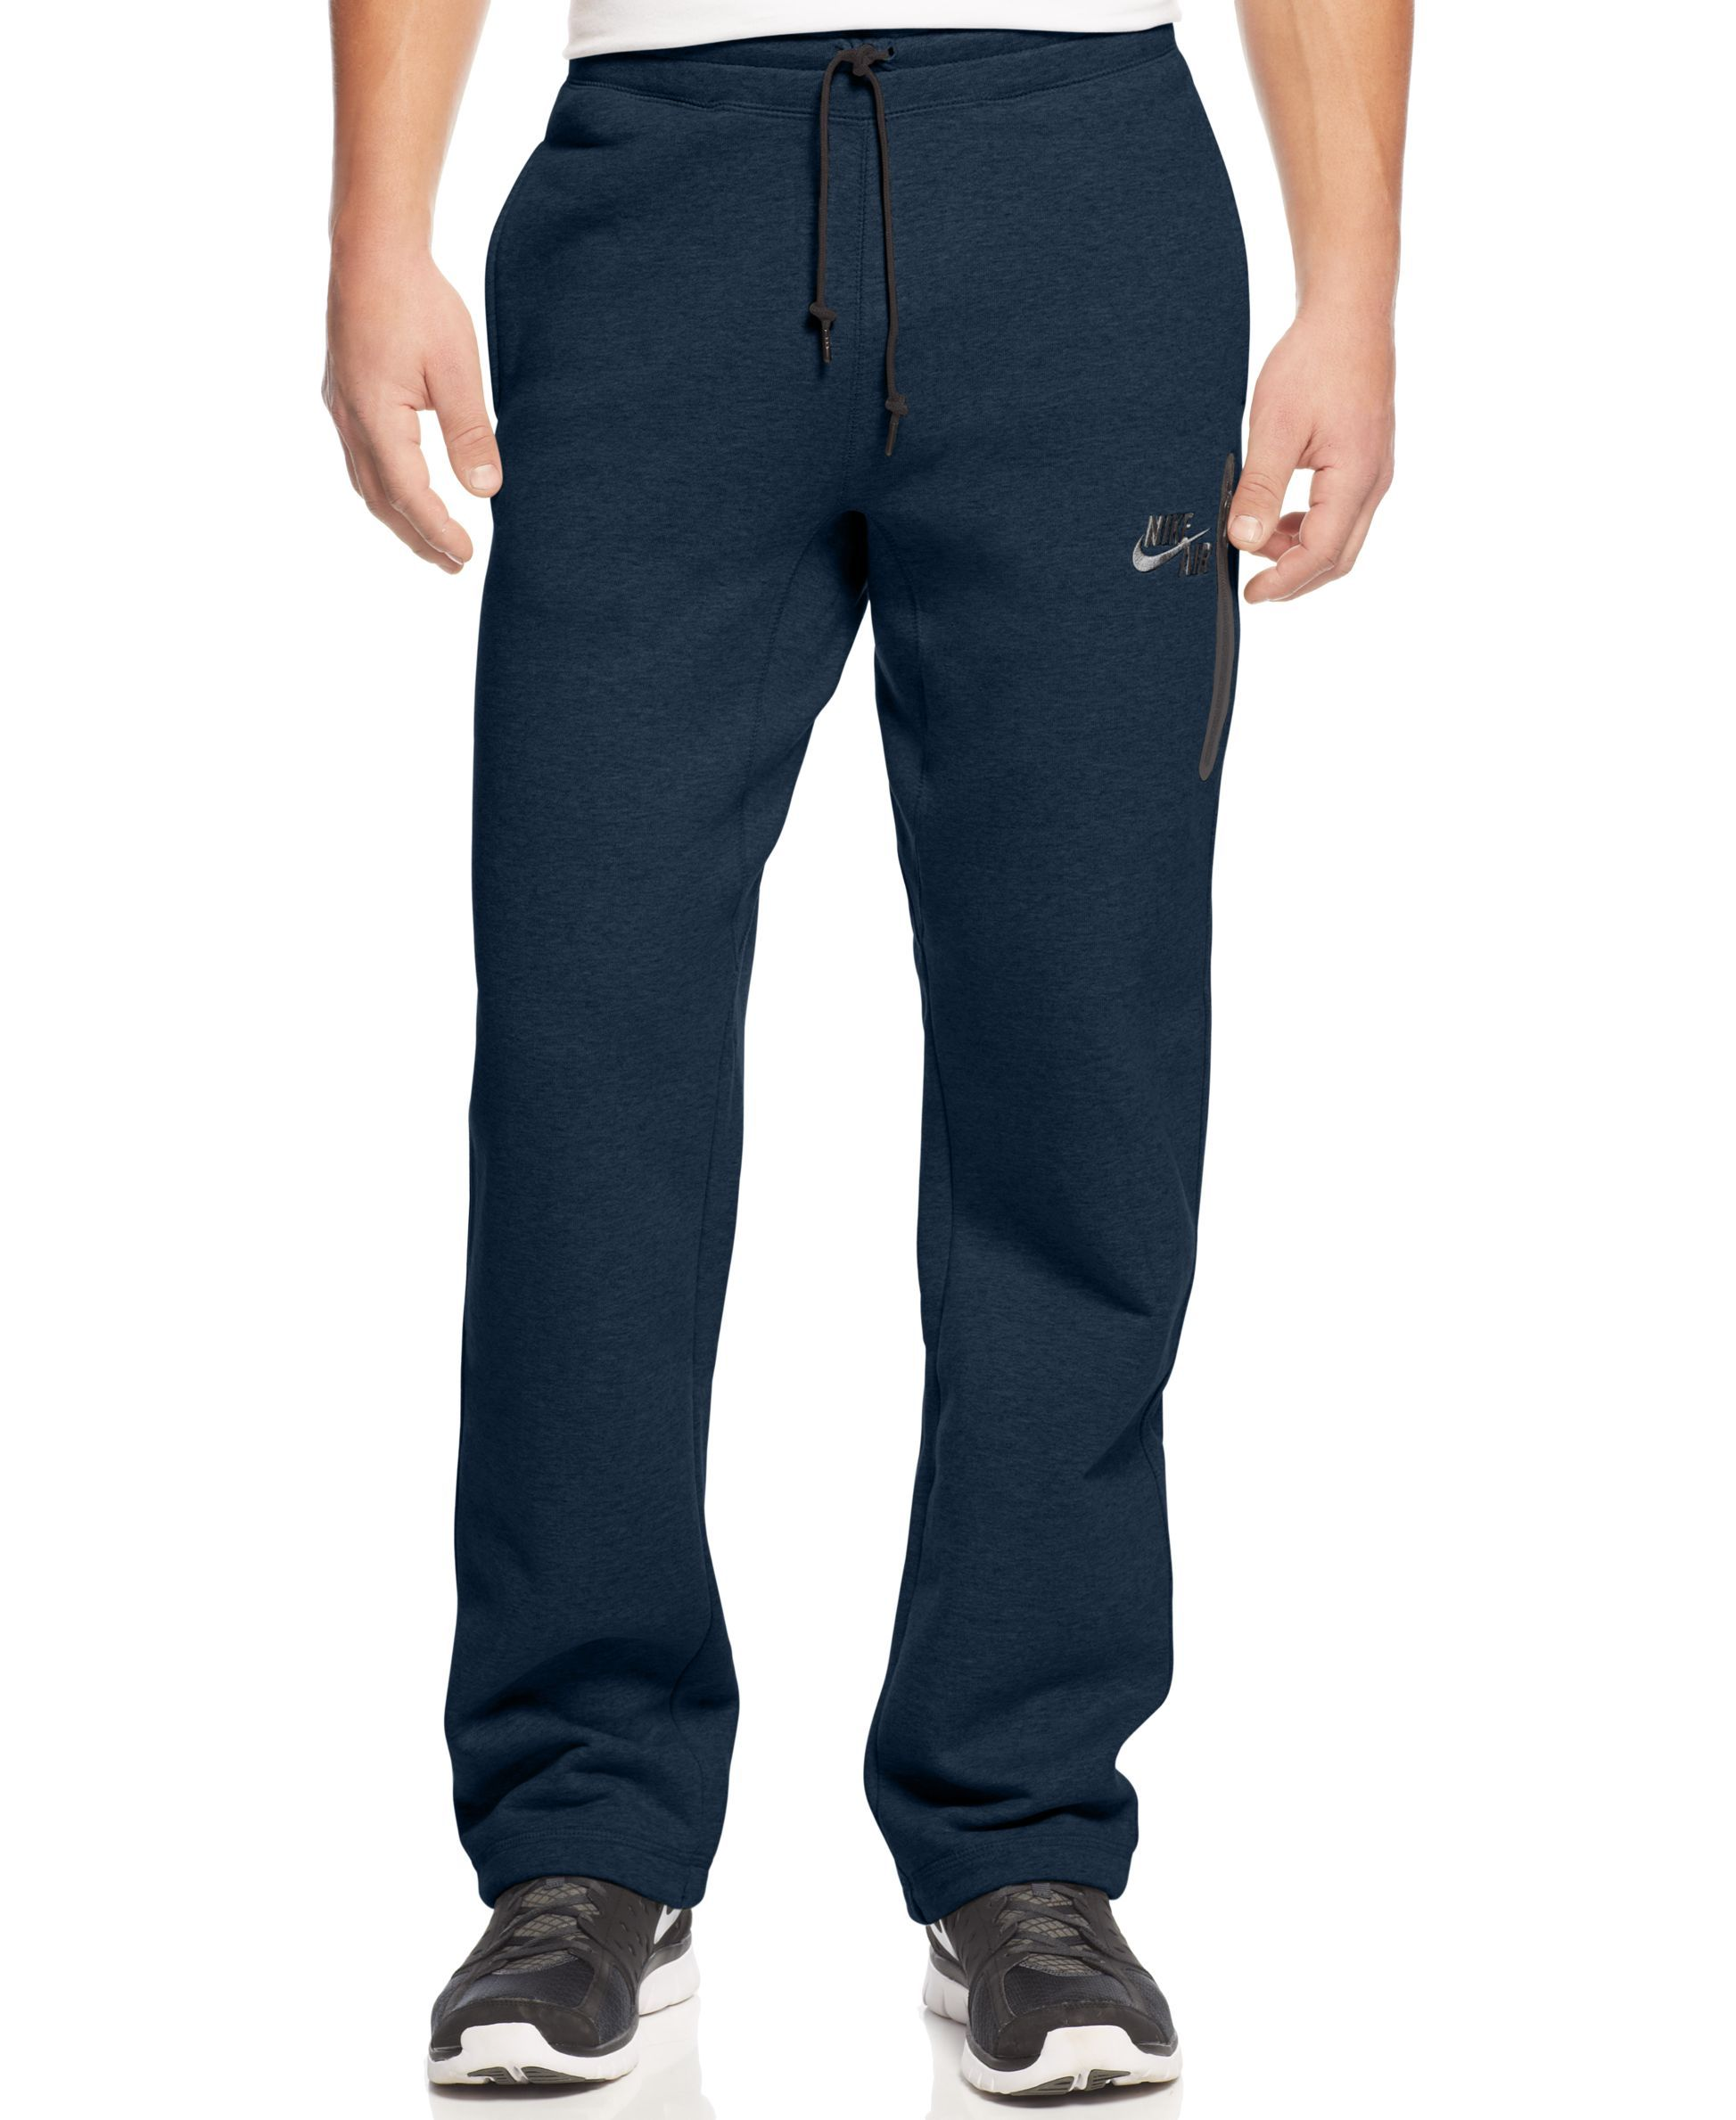 Nike Pivot Basketball Pants